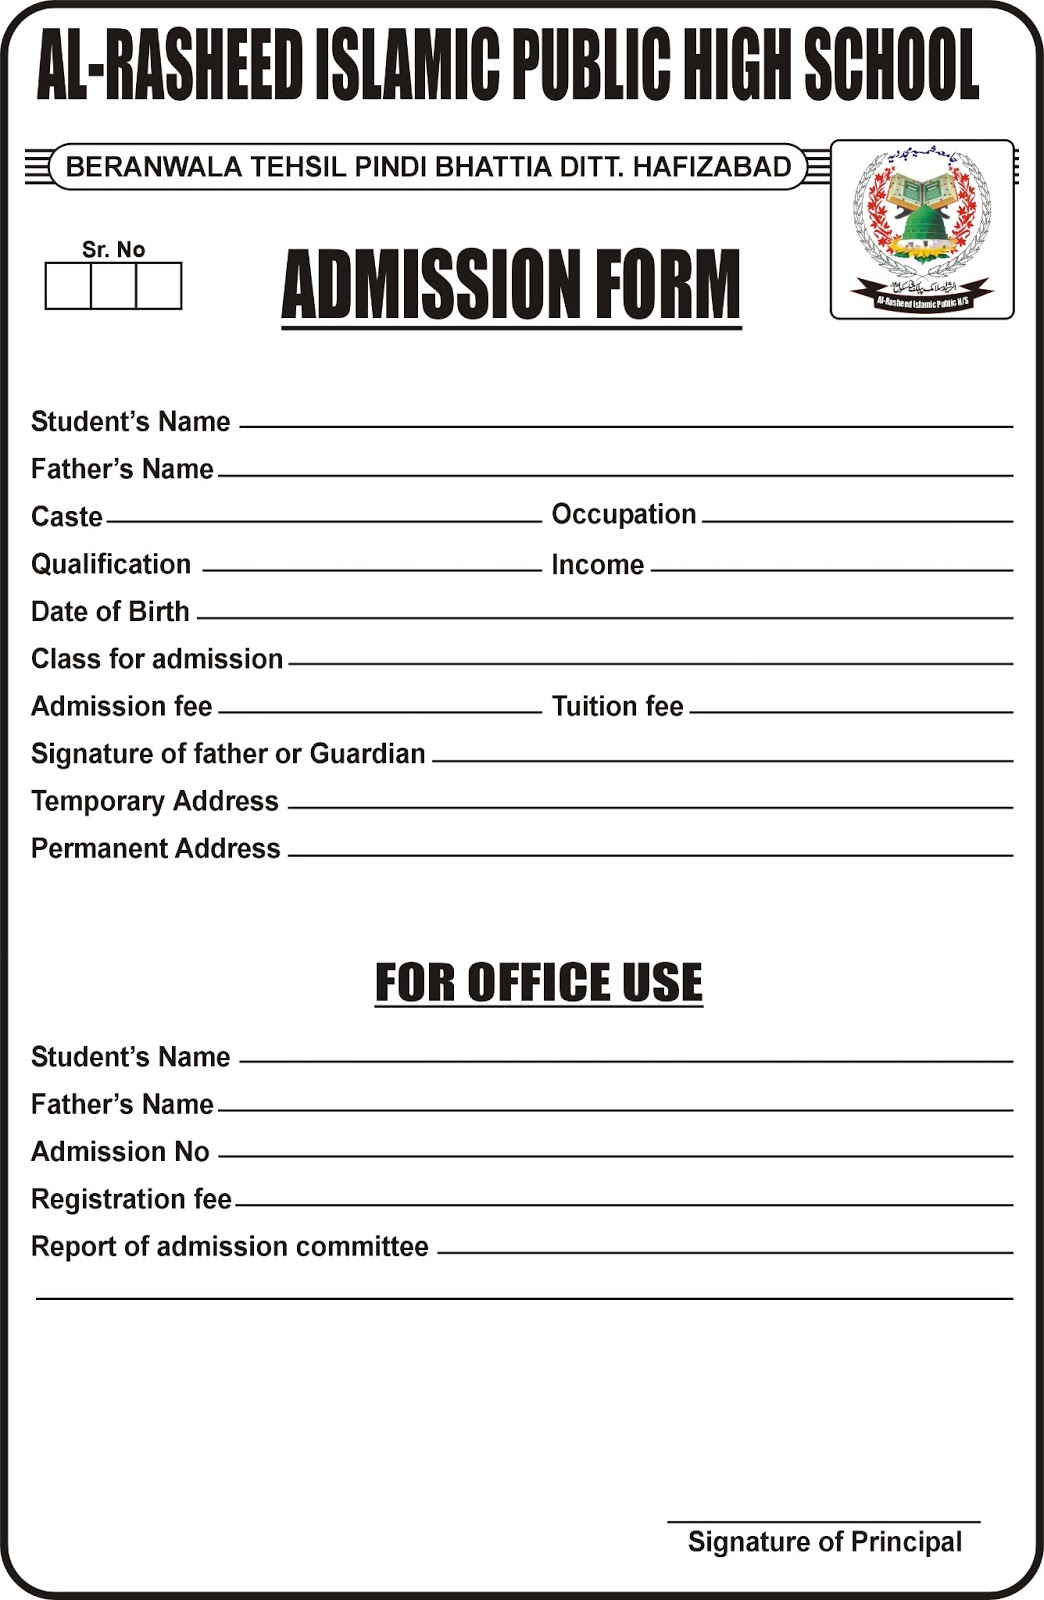 ARIP HIGH SCHOOL: ADMISSION FORMS